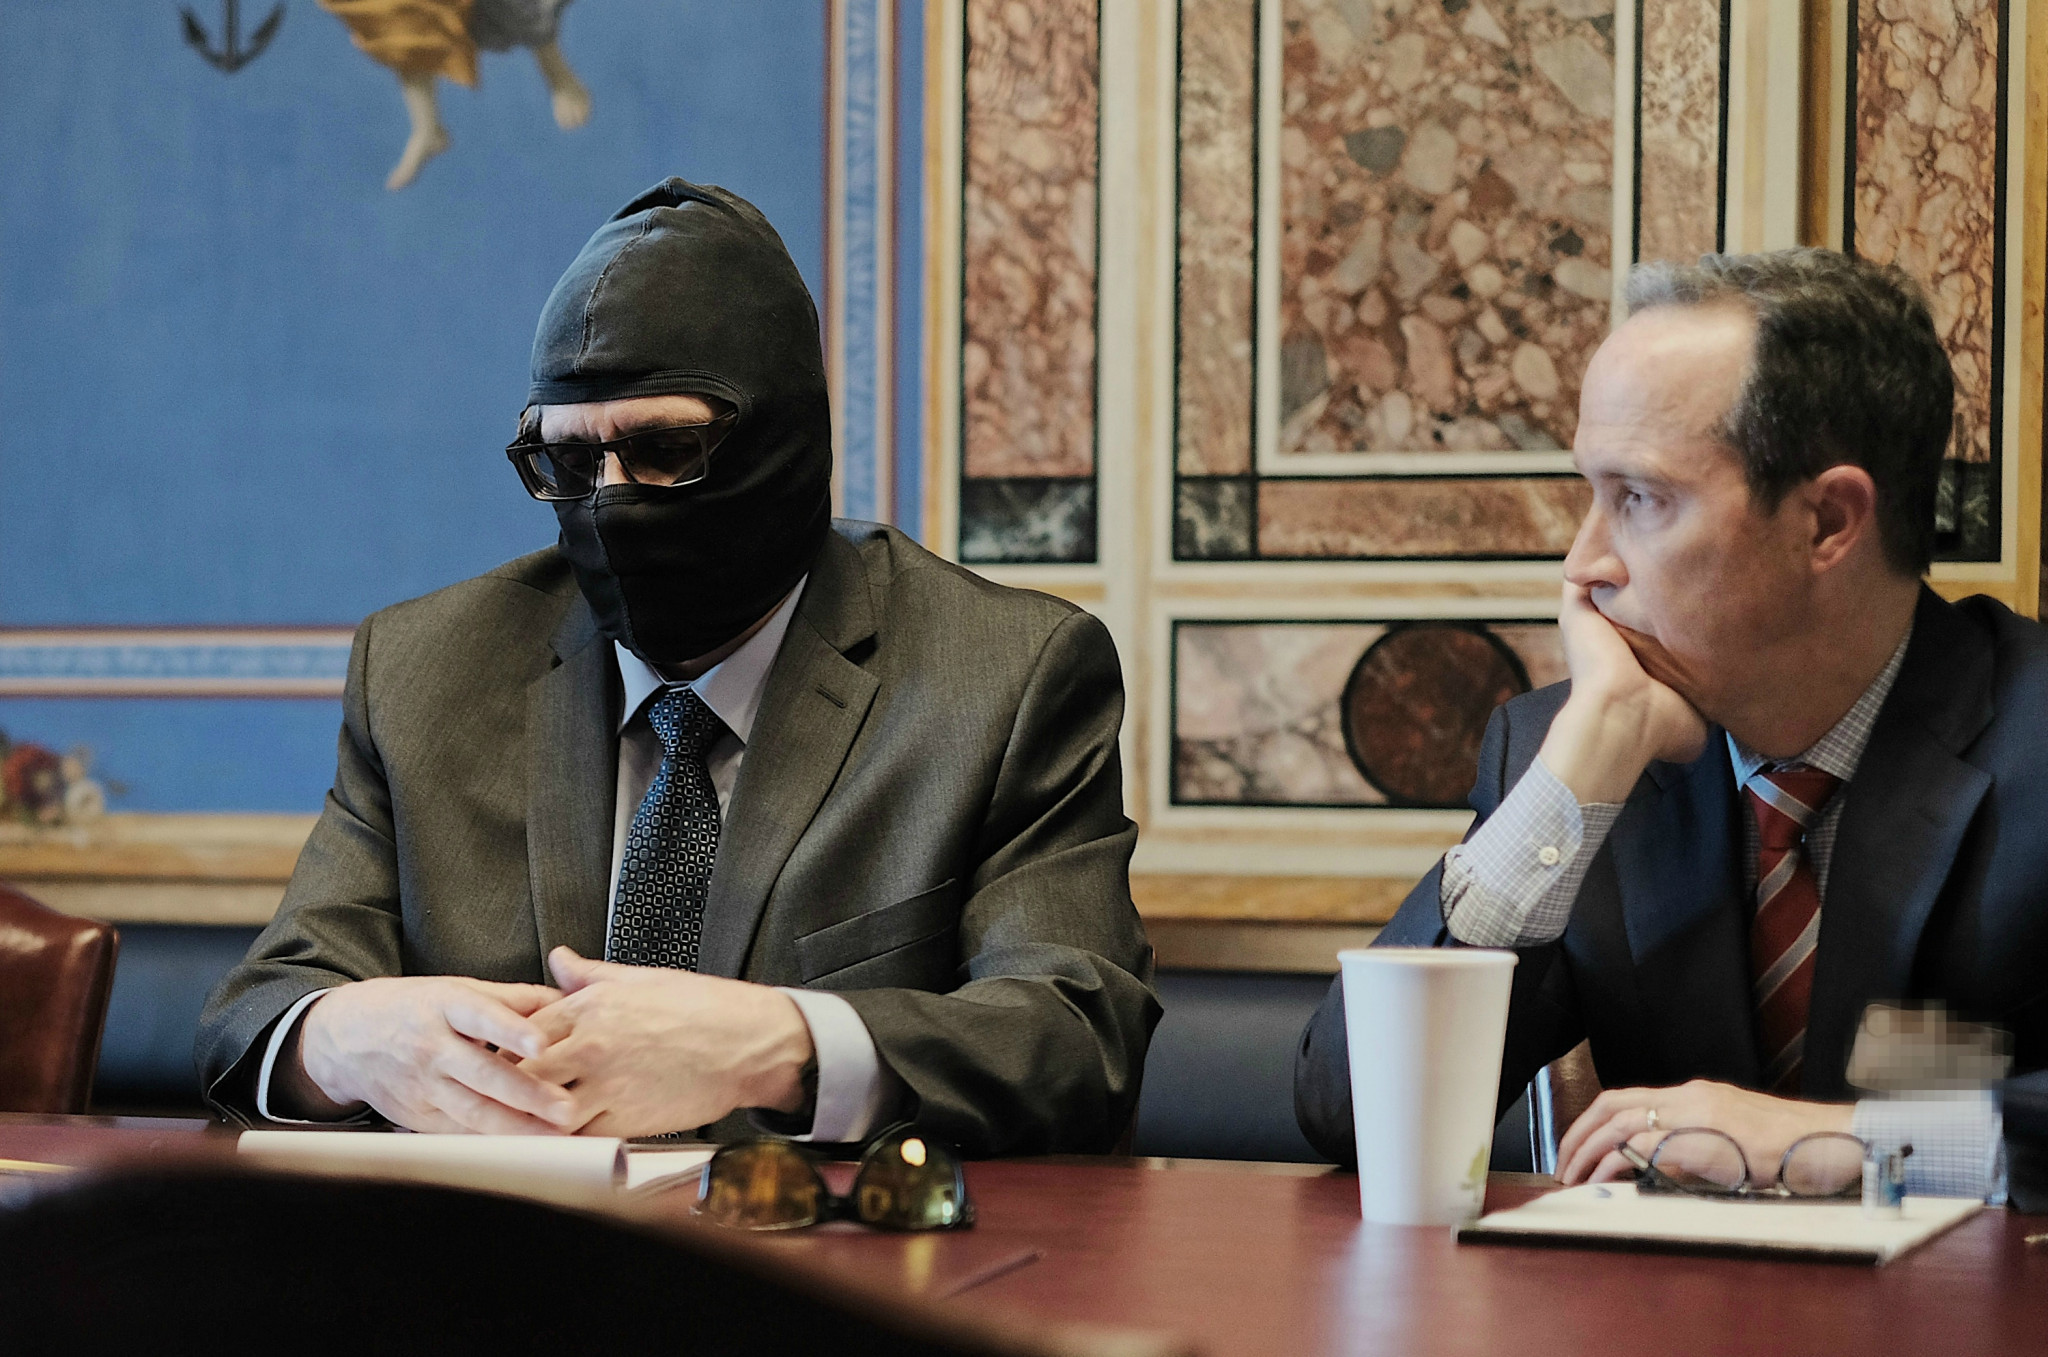 Grigory Rodchenkov, left, appeared at hearings in 2018 when officials began pursuing new anti-doping legislation ©Helsinki Commission